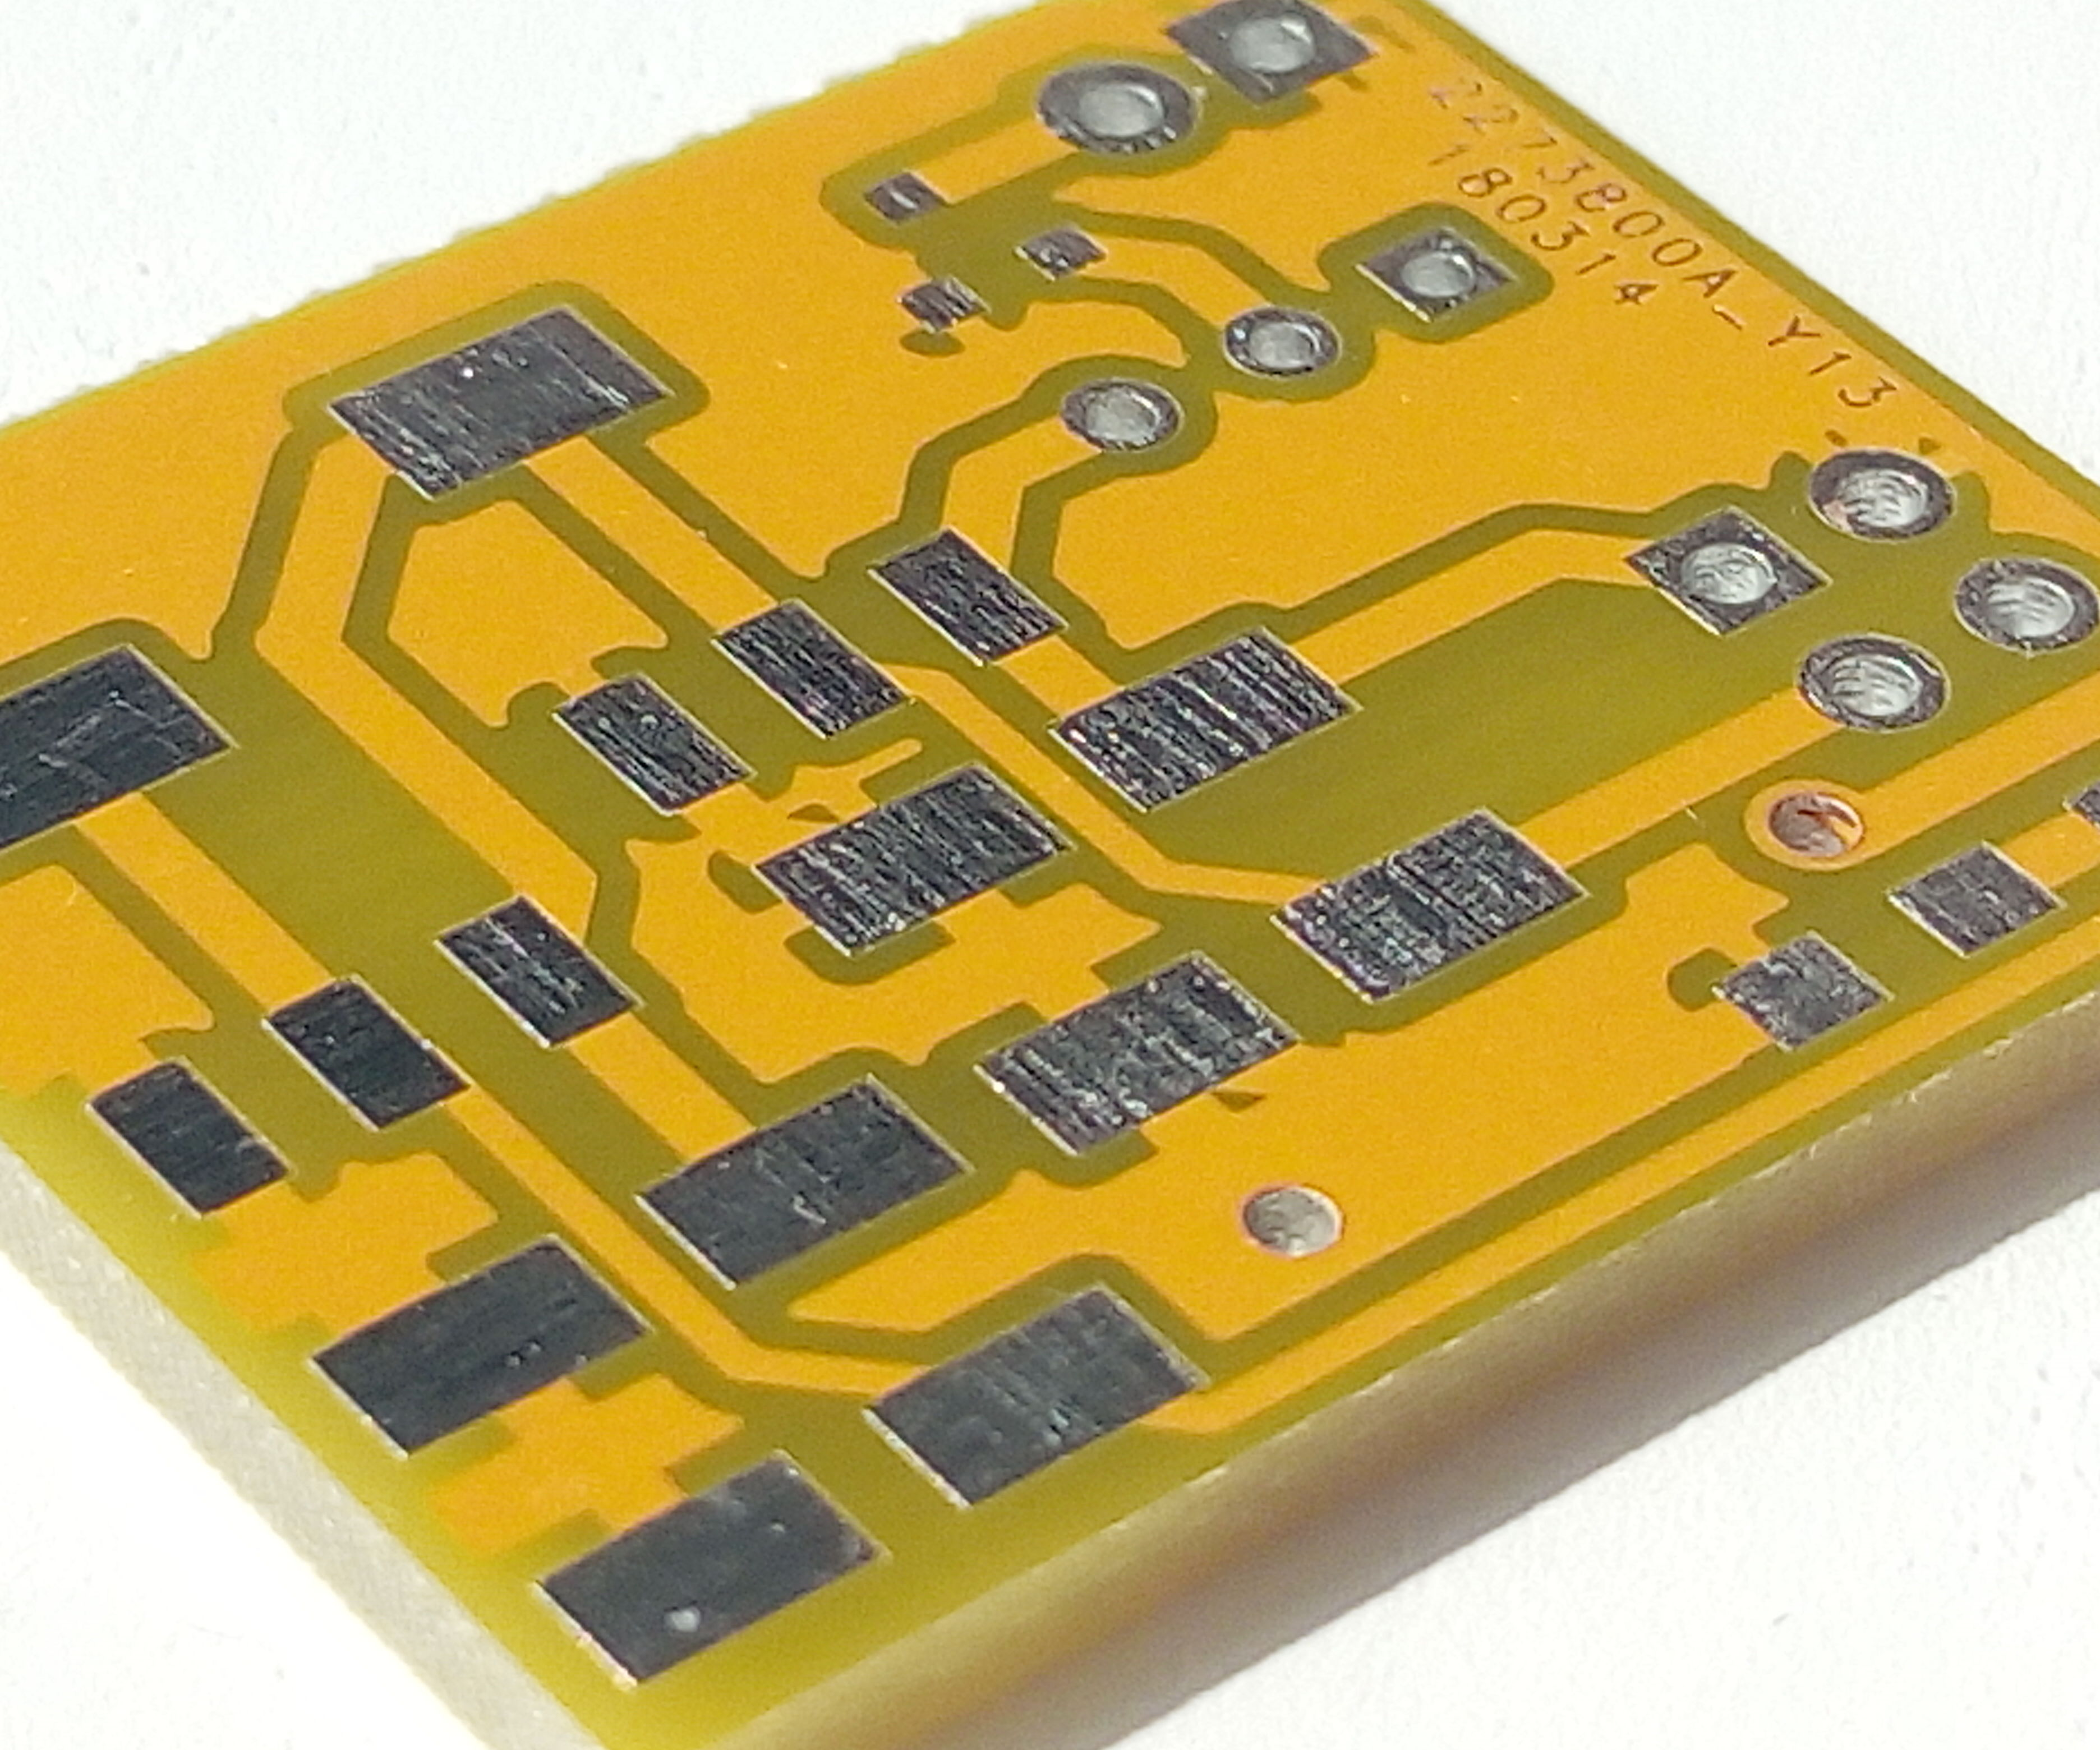 Good Quality PCBs for Affordable Price.